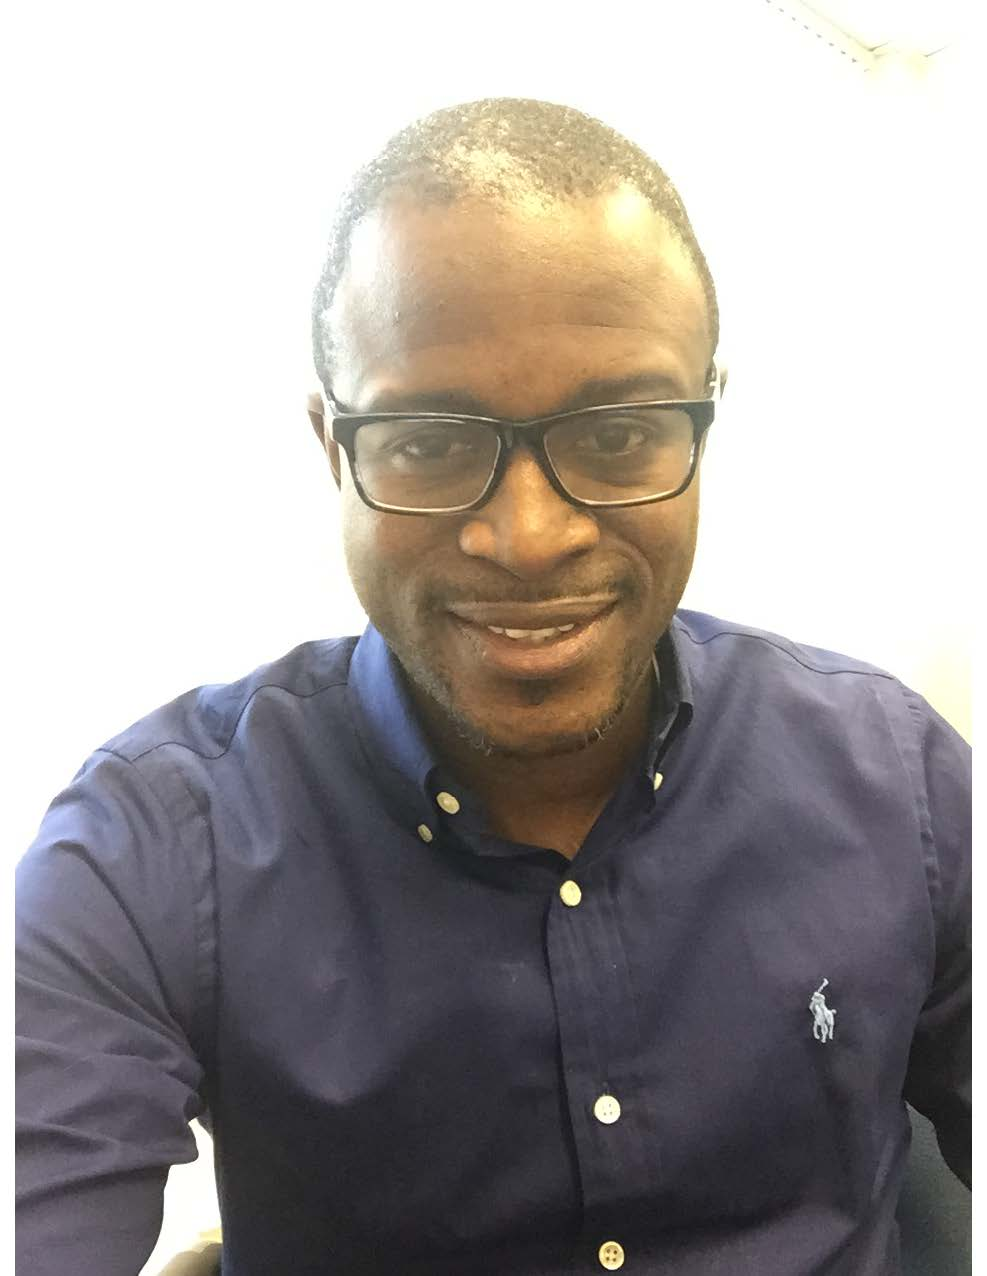 Profile Kevon Rhiney